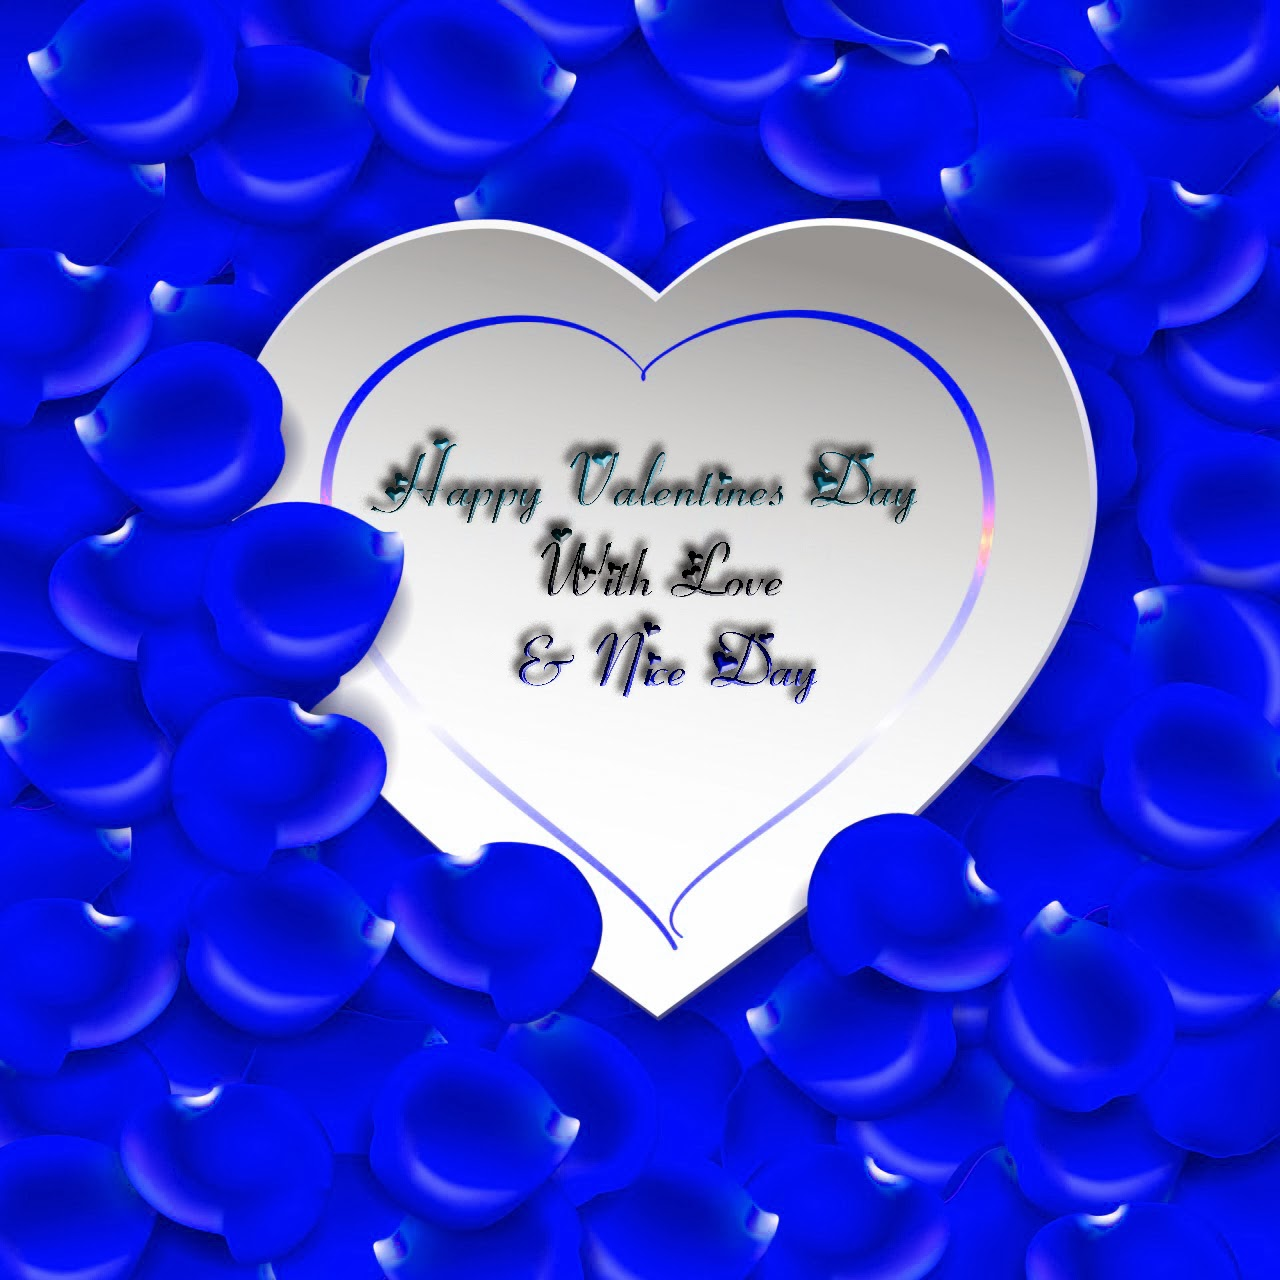 Happy-Valentines-Day-Heart-Image-HD